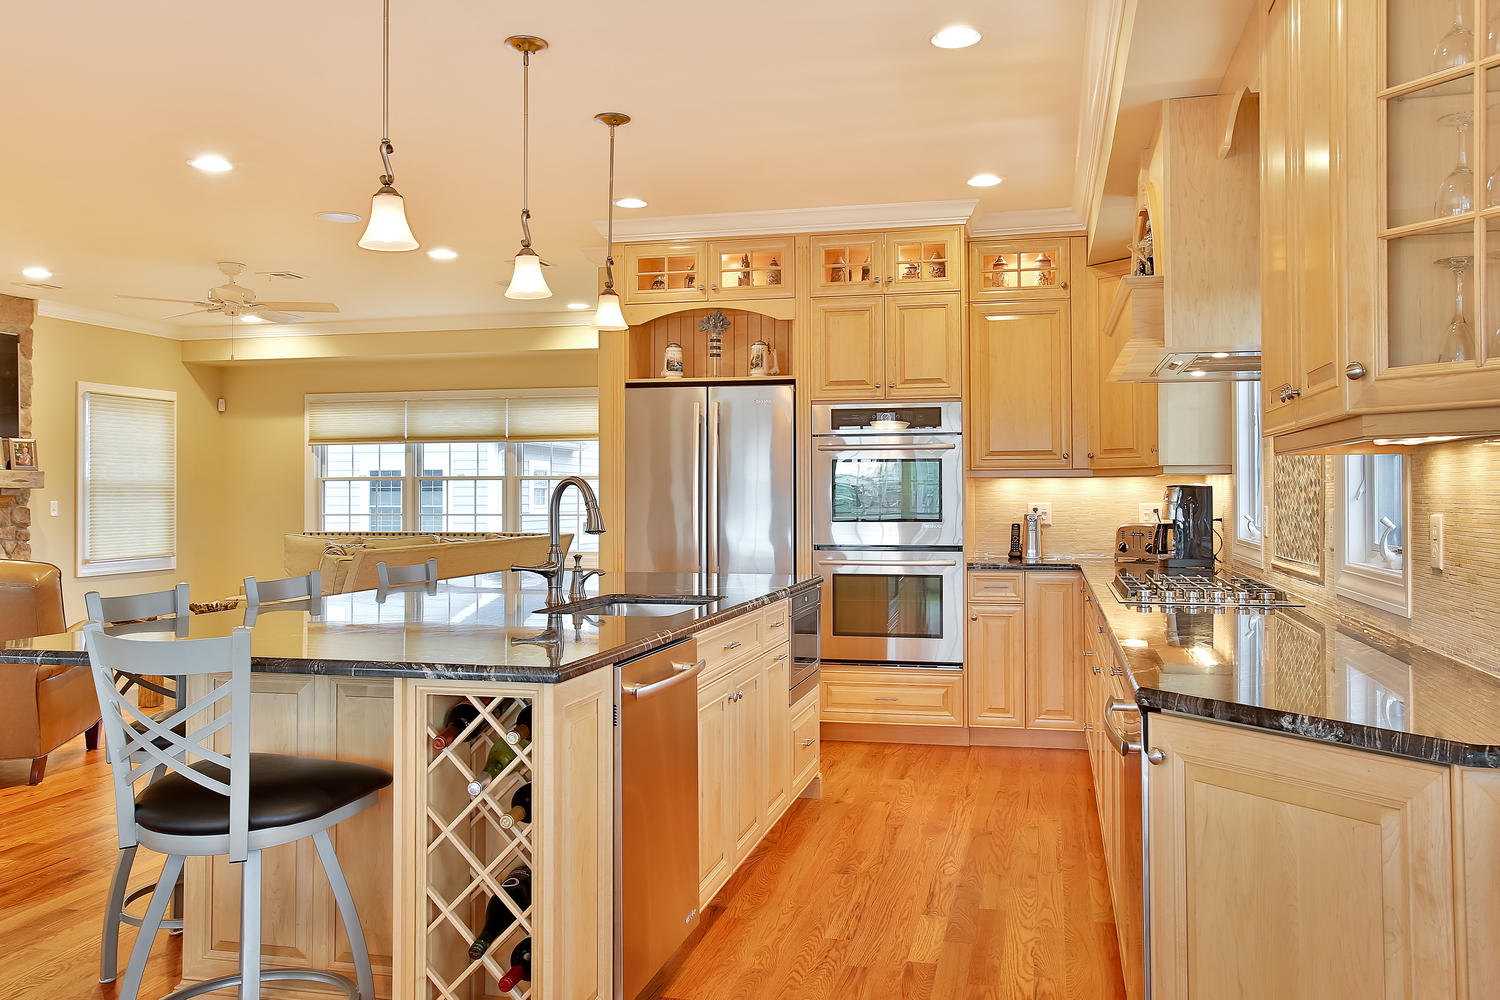 Natural Stained Wood Kitchen light wood kitchen cabinets Fabulous Light Wood Cabinets Open Kitchen Floor Plan